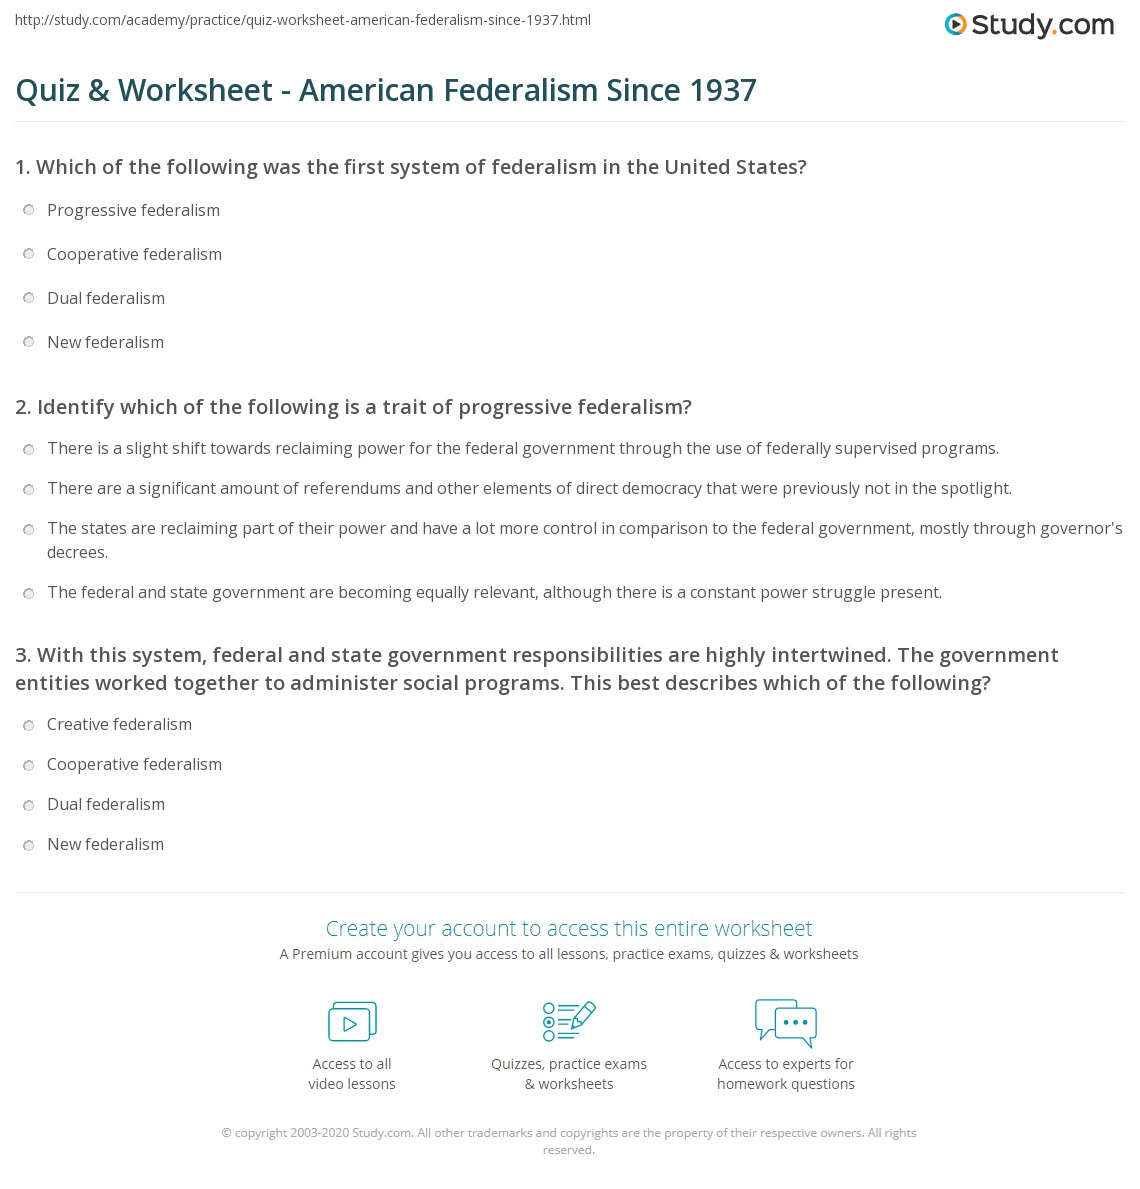 Quiz & Worksheet American Federalism Since 1937